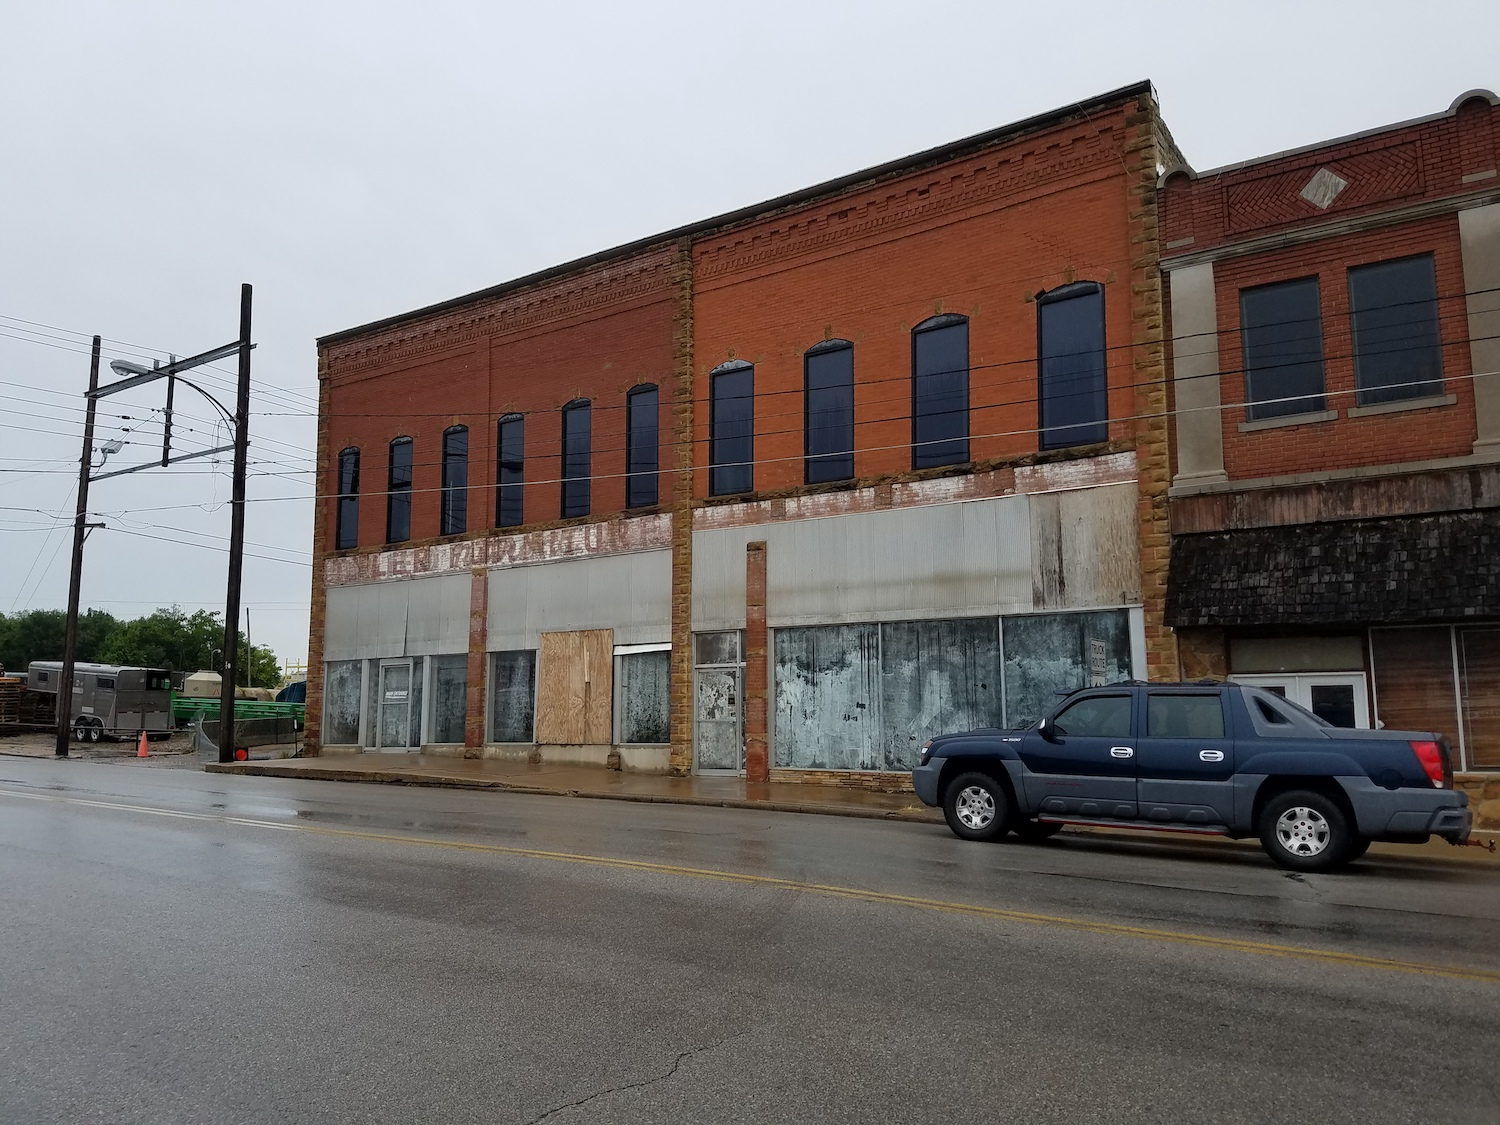 The Tyler building is Sapulpa's oldest surviving building and has been out of commission for years.